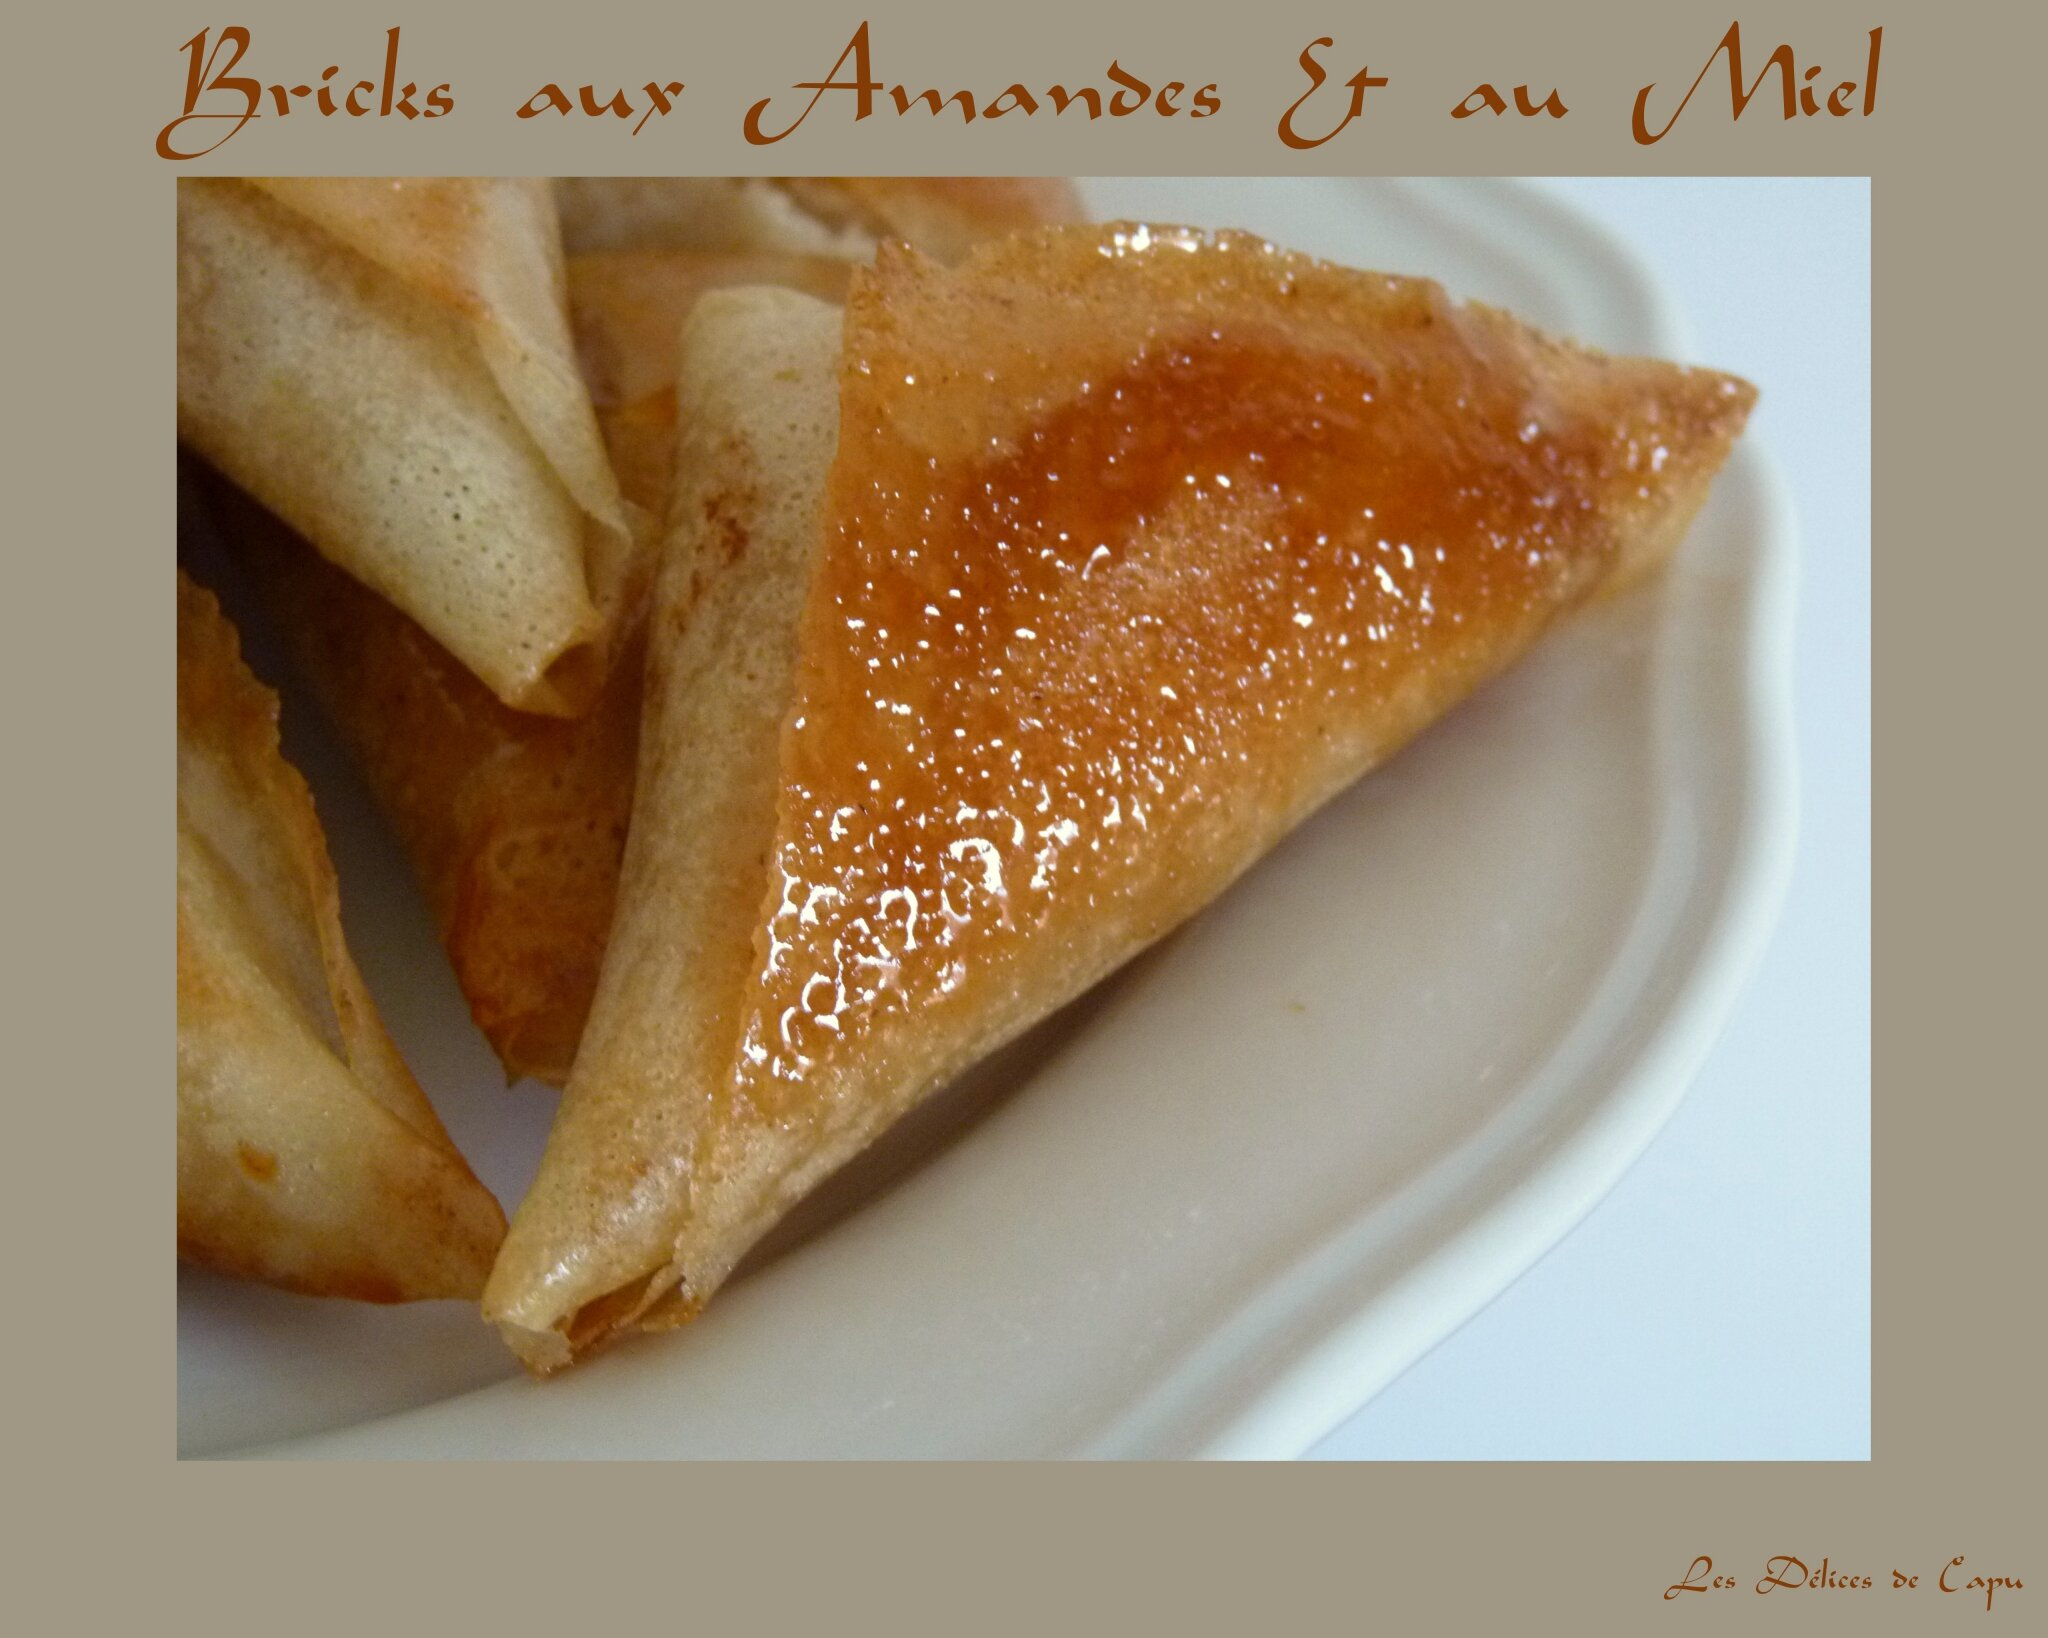 Bricks aux amandes1